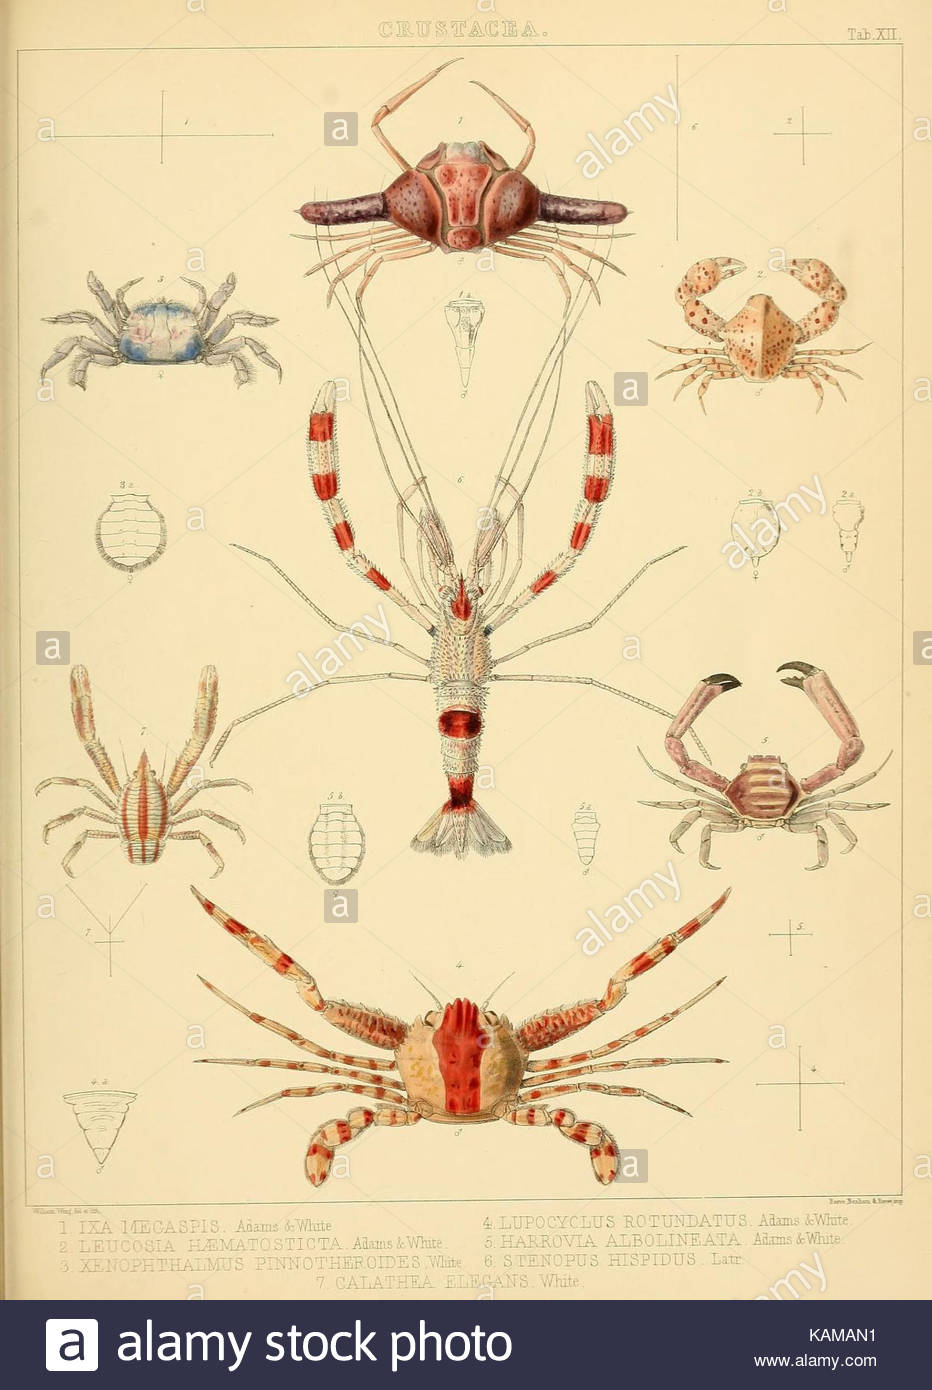 the zoology of the voyage of hms samarang under the mand of captain KAMAN1